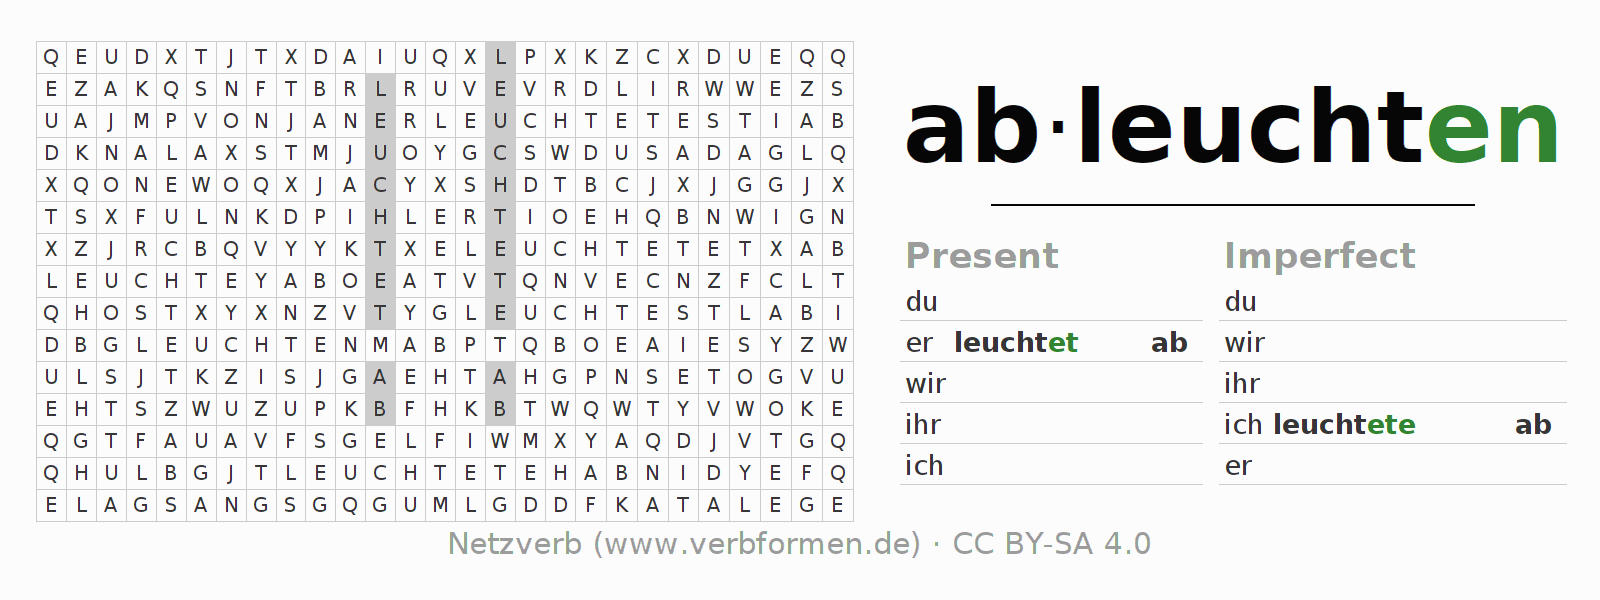 Word search puzzle for the conjugation of the verb ableuchten